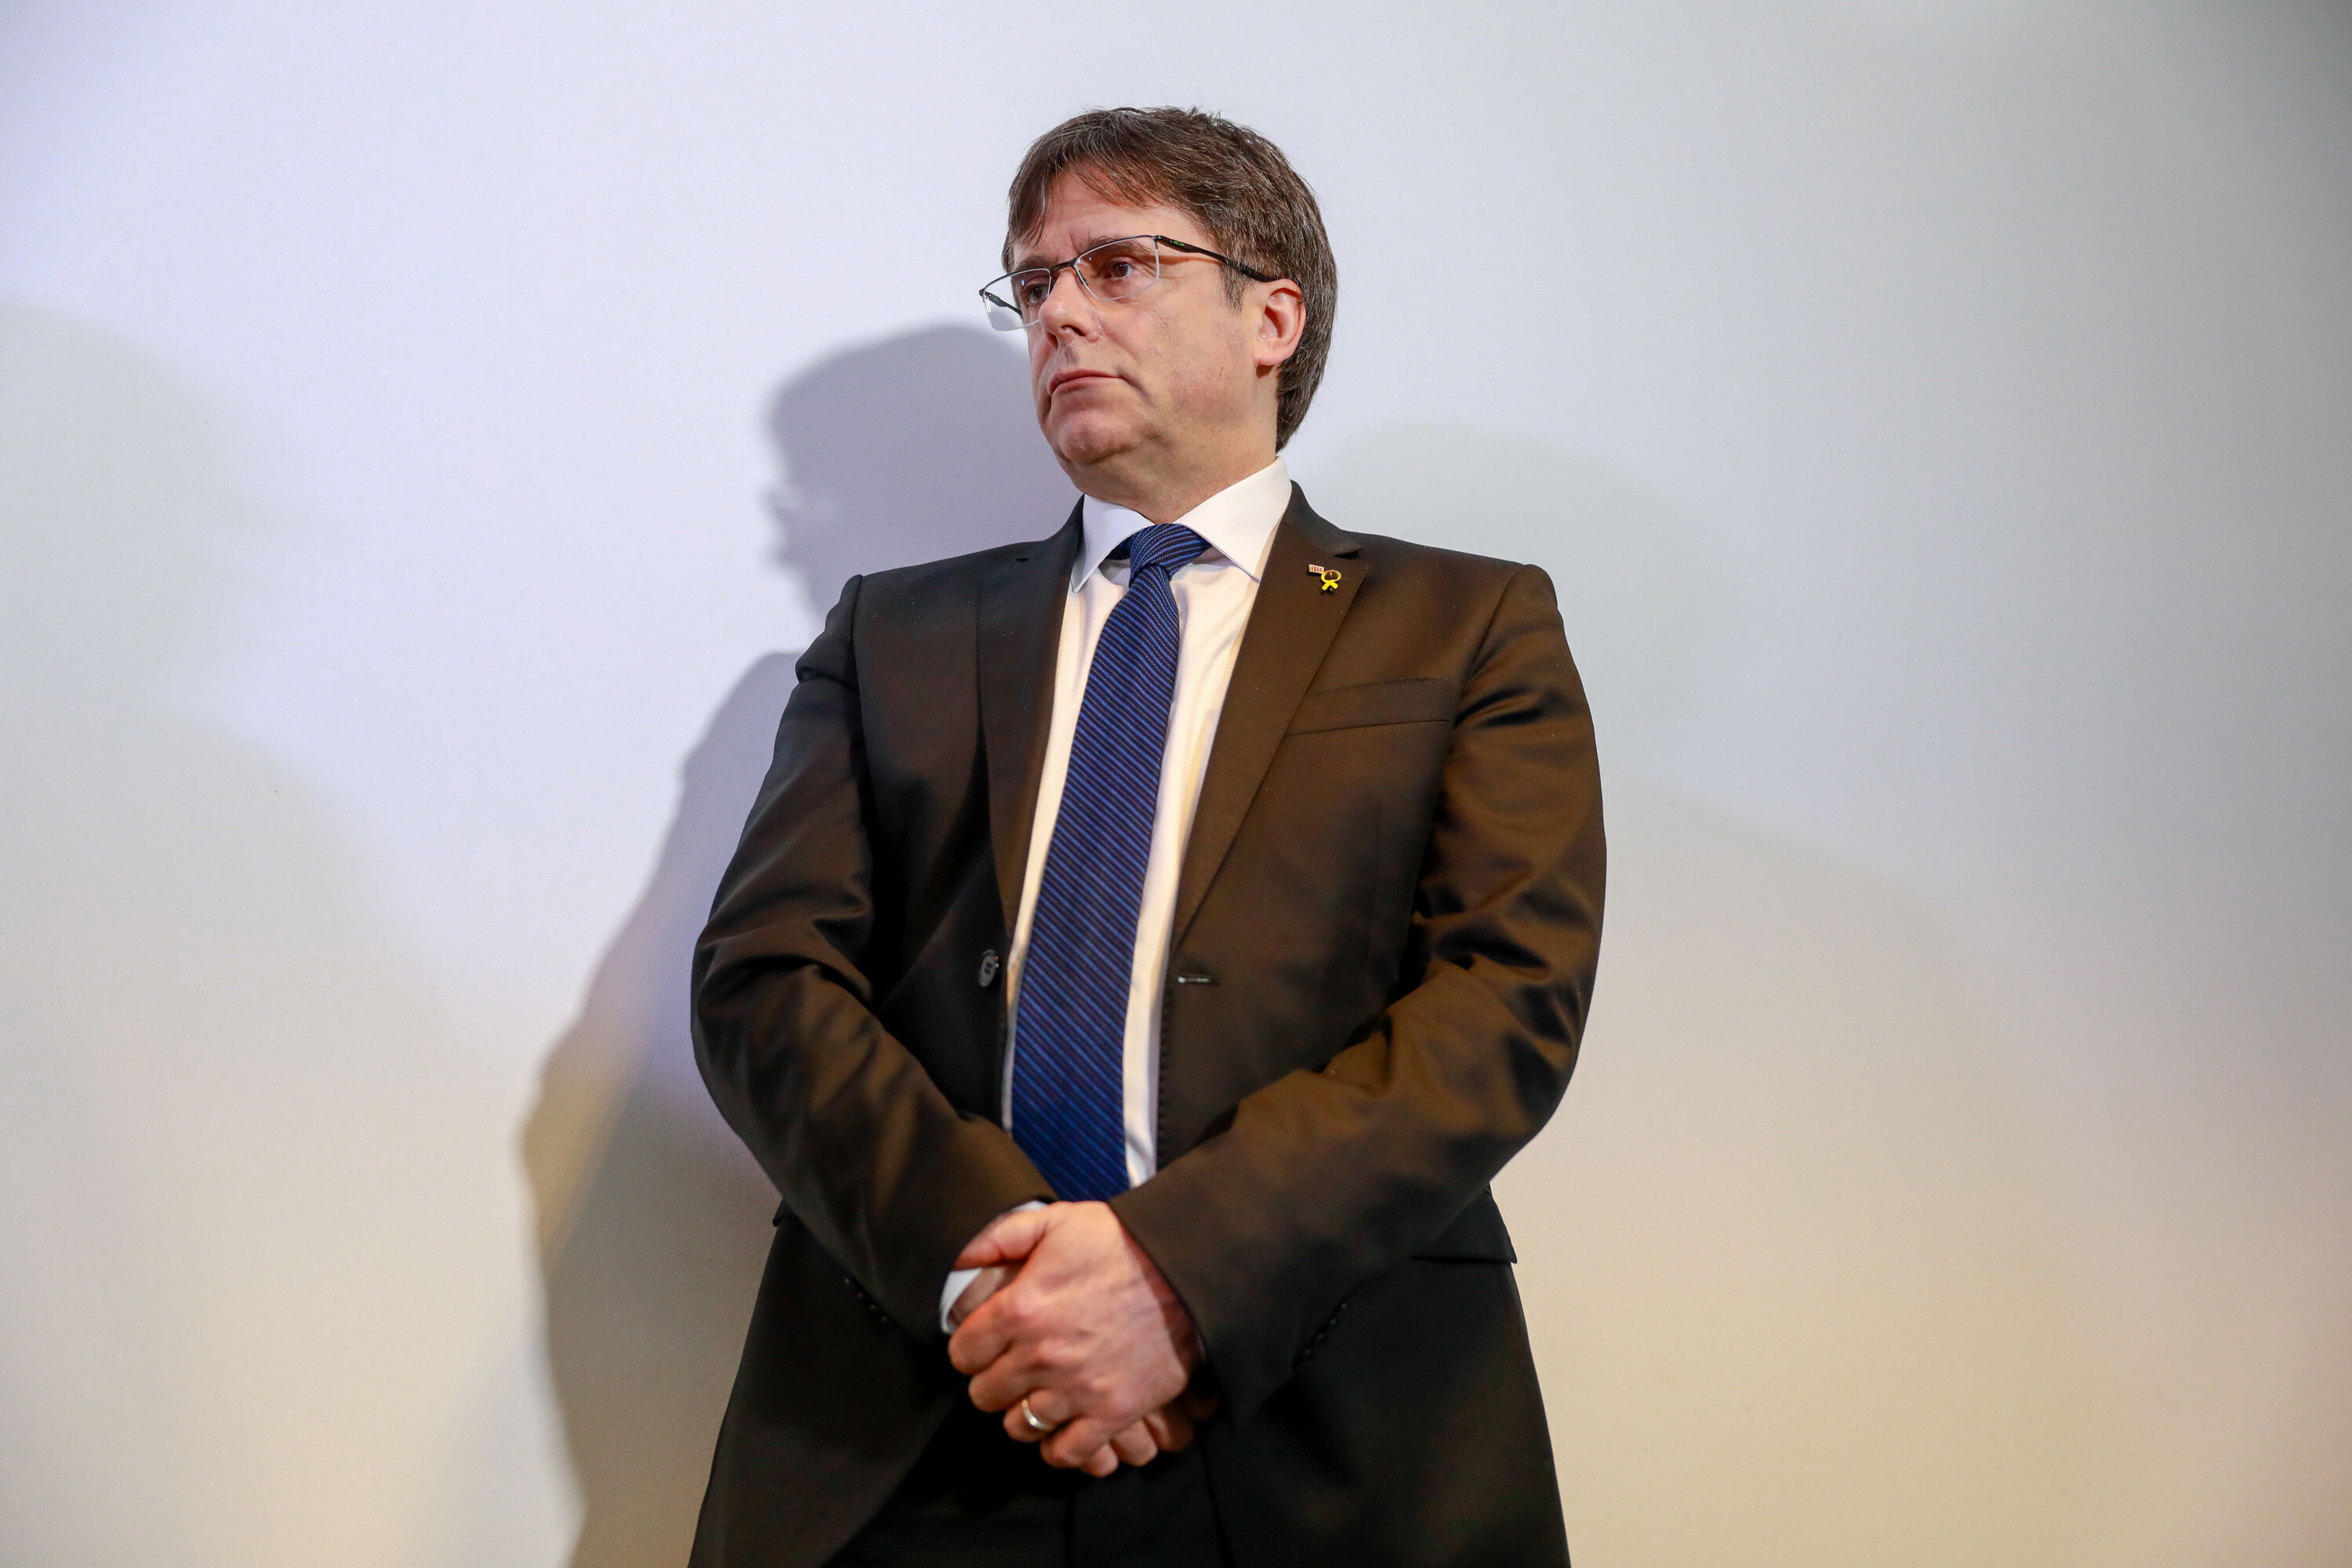 Catalan independence leader Carles Puigdemont arrested in Italy four years after fleeing Spain